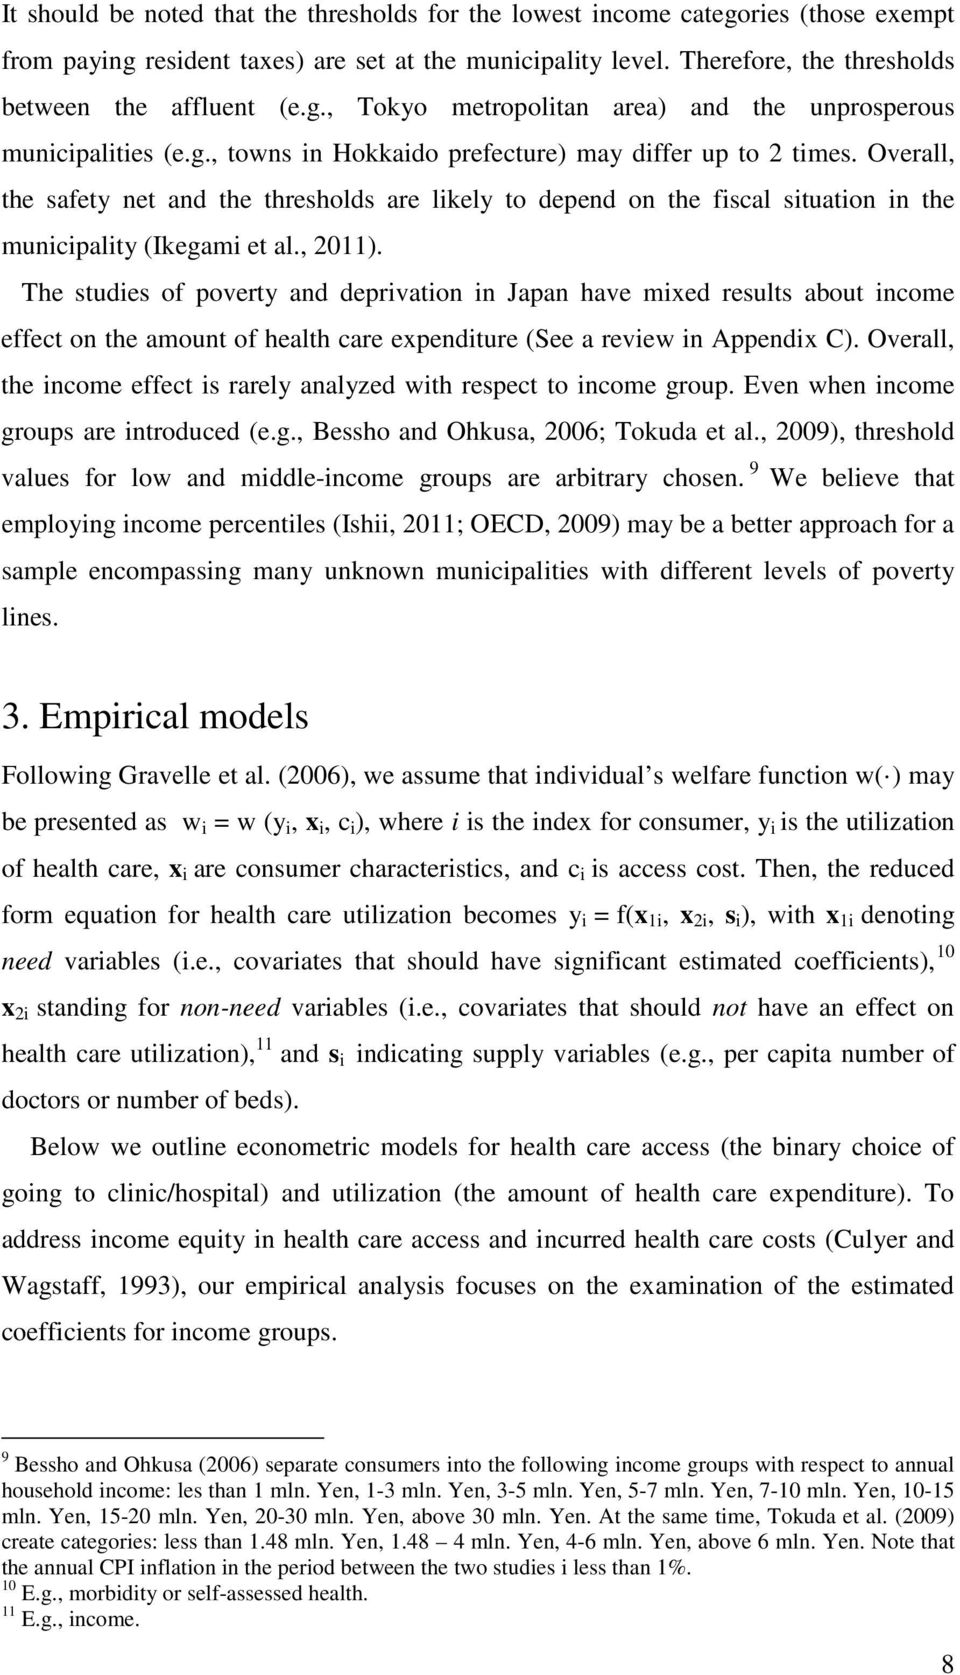 The studes of poverty and deprvaton n Japan have mxed results about ncome effect on the amount of health care expendture (See a revew n Appendx C).